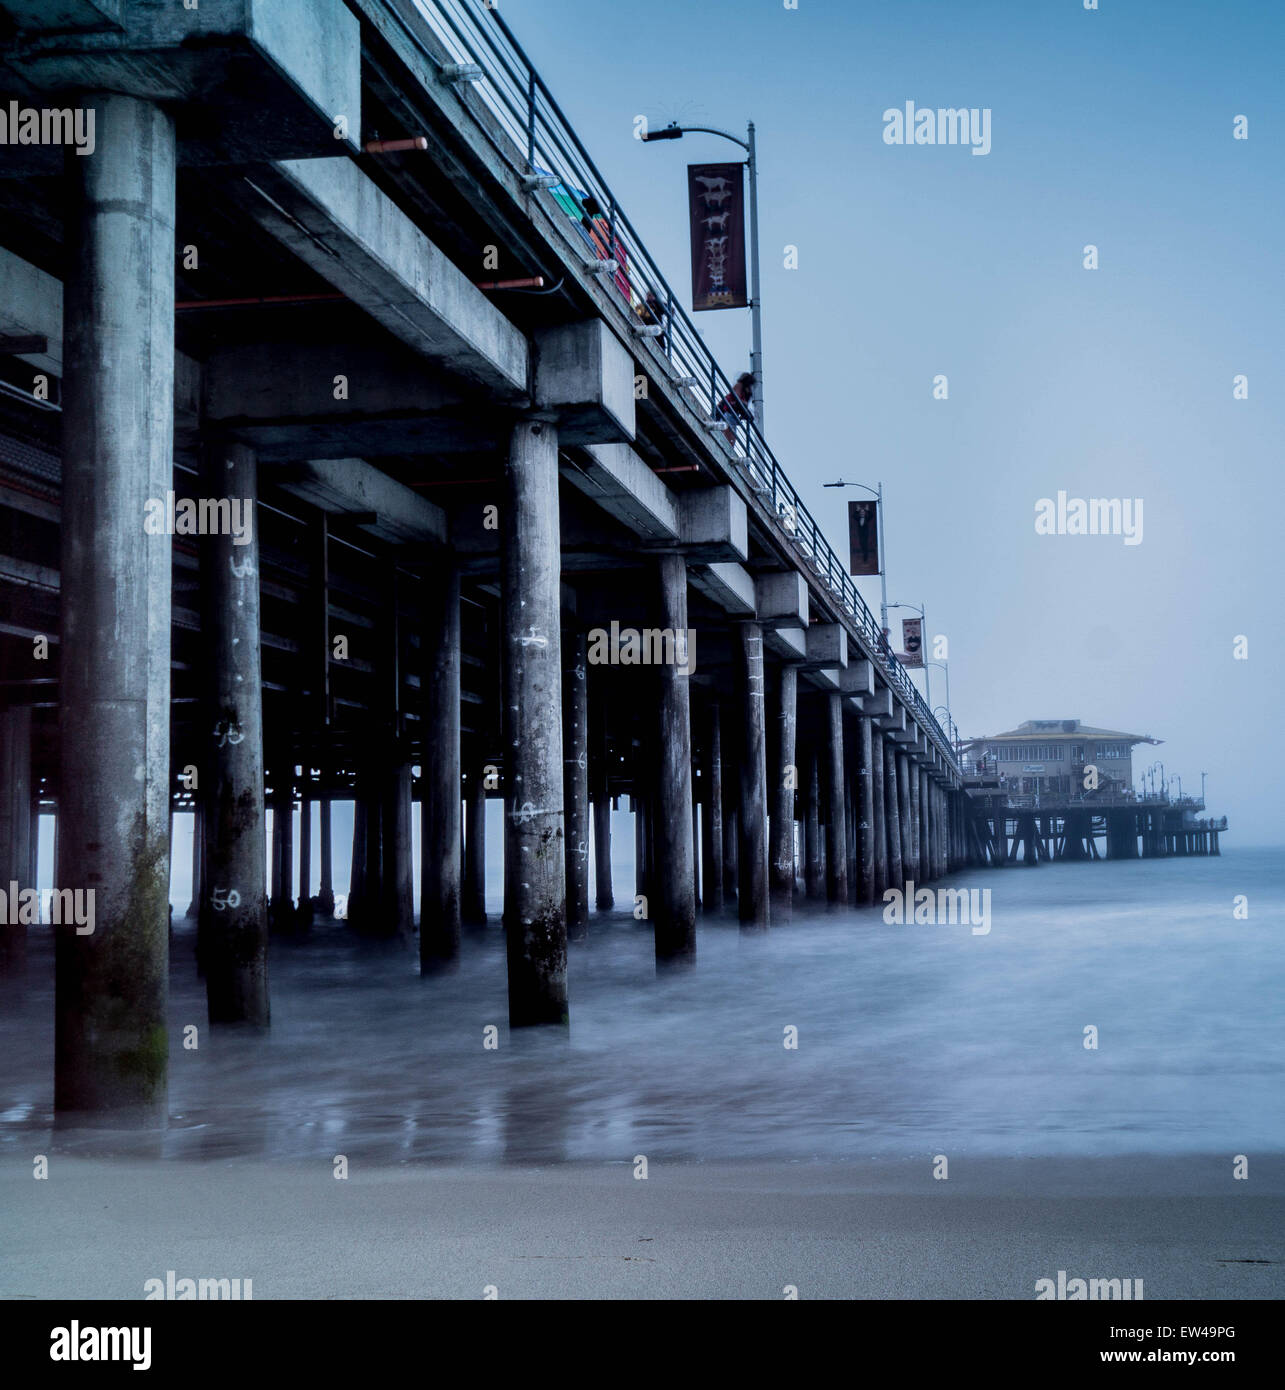 Santa Monica pier using an ND filter - Stock Image